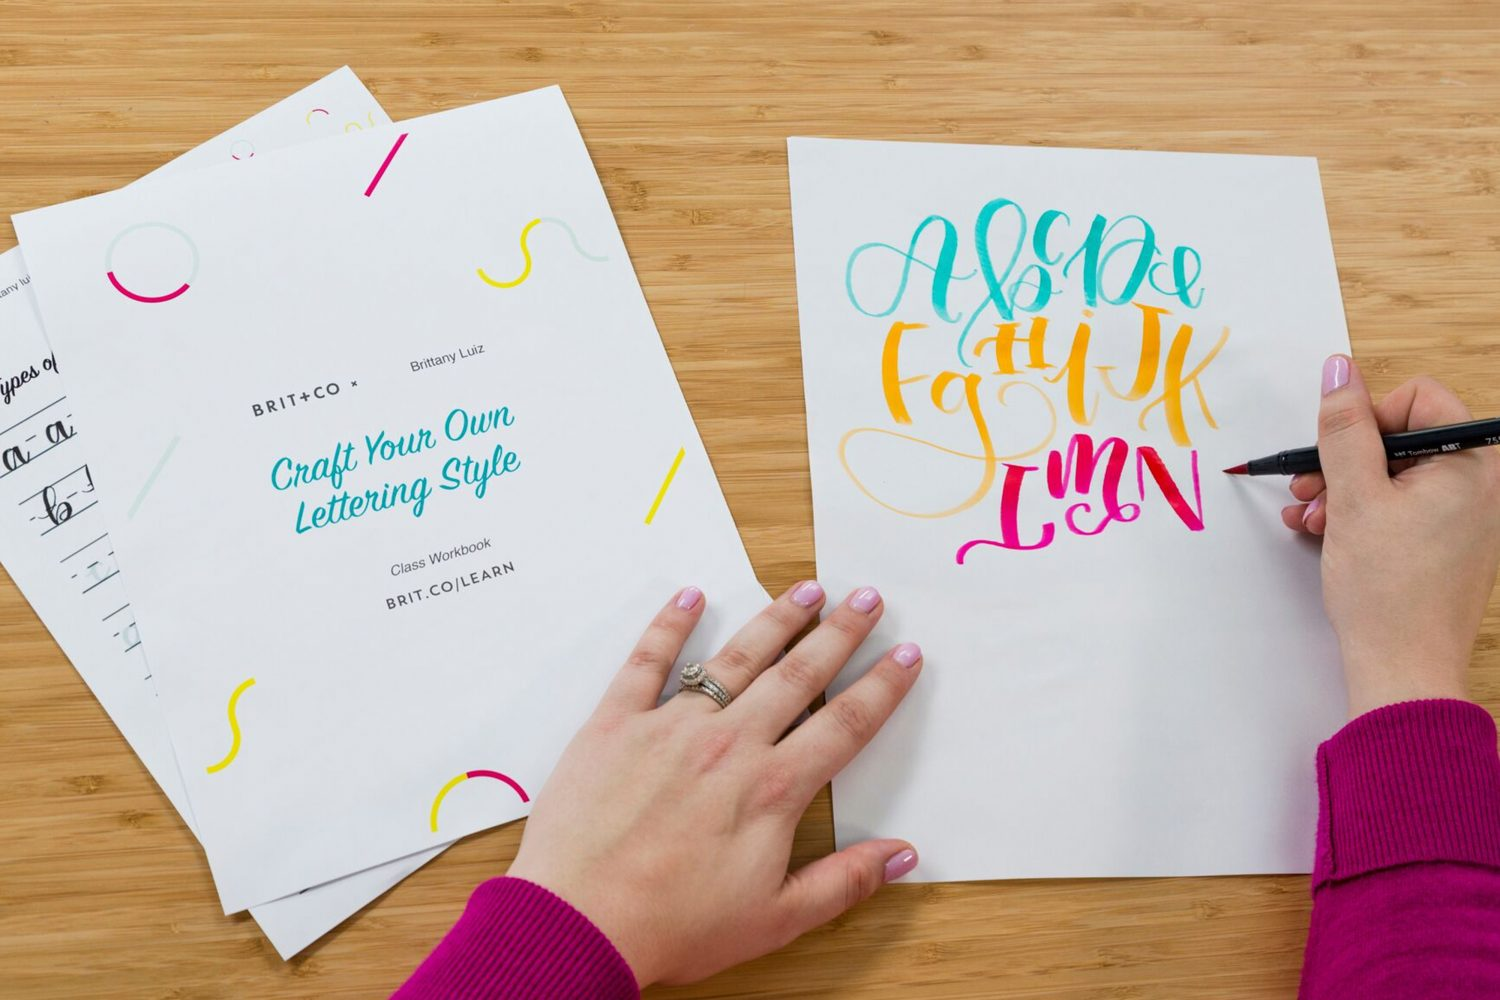 Take our new lettering class on @britandco today and learn how to craft your own lettering style!